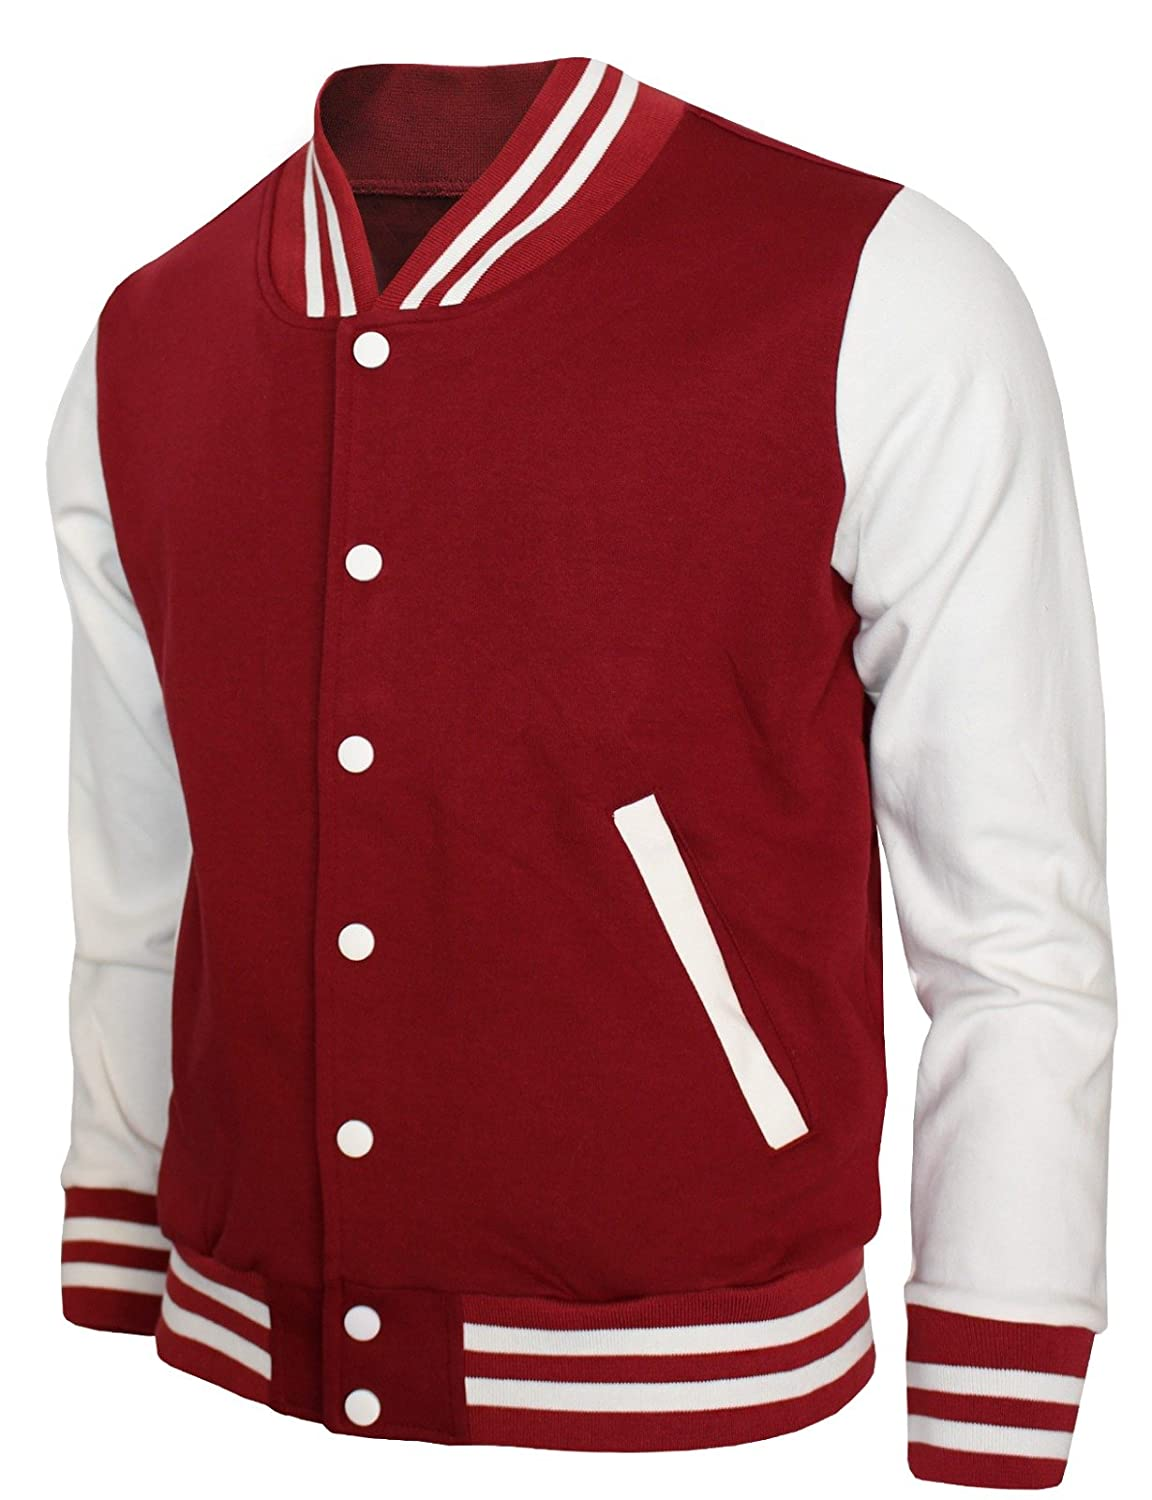 50s Costumes | 50s Halloween Costumes BCPOLO Baseball Jacket Varsity Baseball Cotton Jacket Letterman jacket 8 Colors $37.95 AT vintagedancer.com